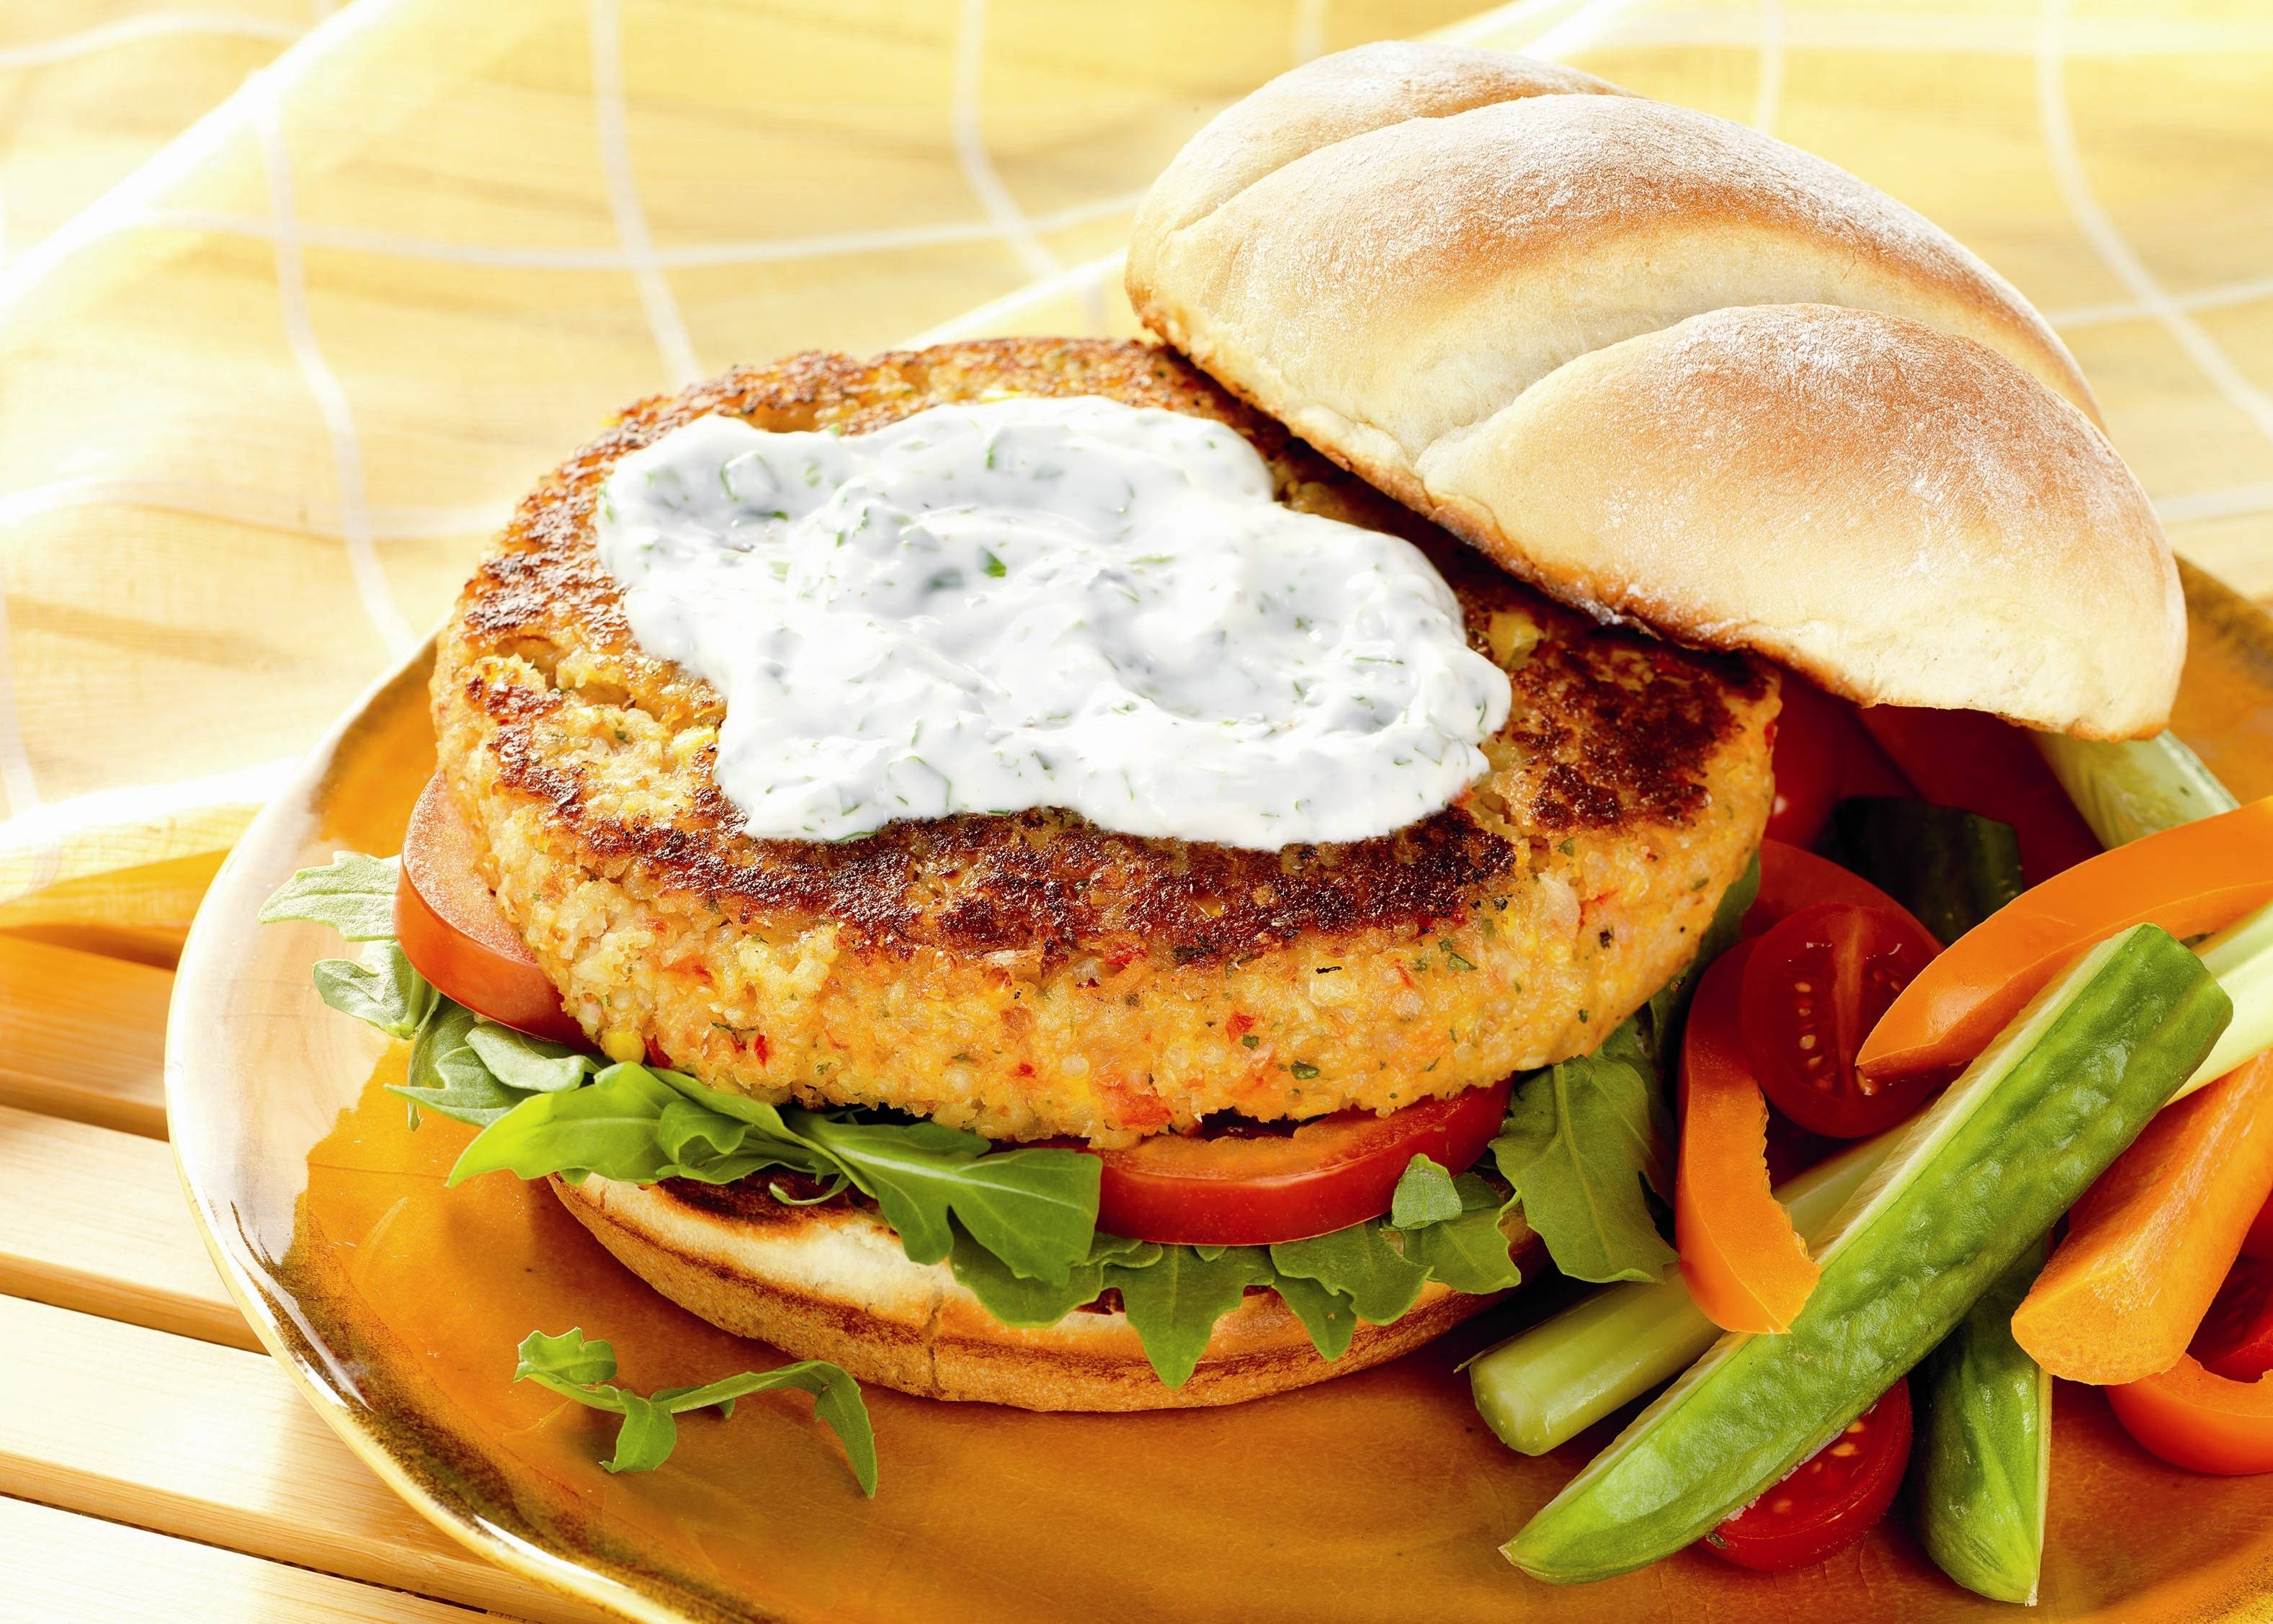 Give guests a meatless burger option by serving Quinoa and Pinto Bean Burgers with Yogurt Sauce.